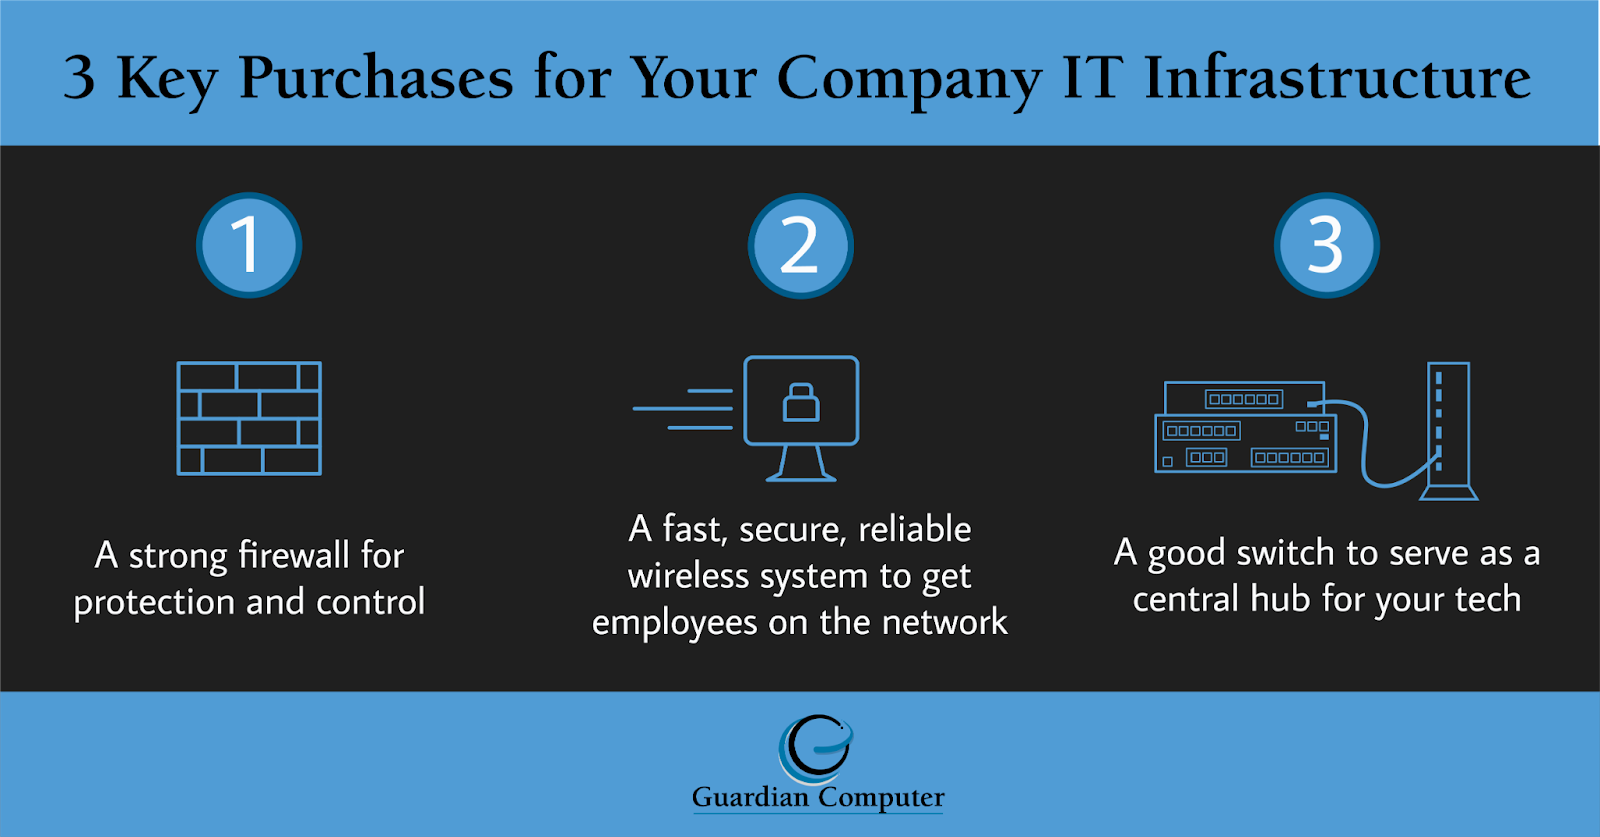 When looking for easy IT fixes for small businesses, consider the 3 key IT infrastructure purchases in this infographic: a firewall, a wireless system, and a switch.